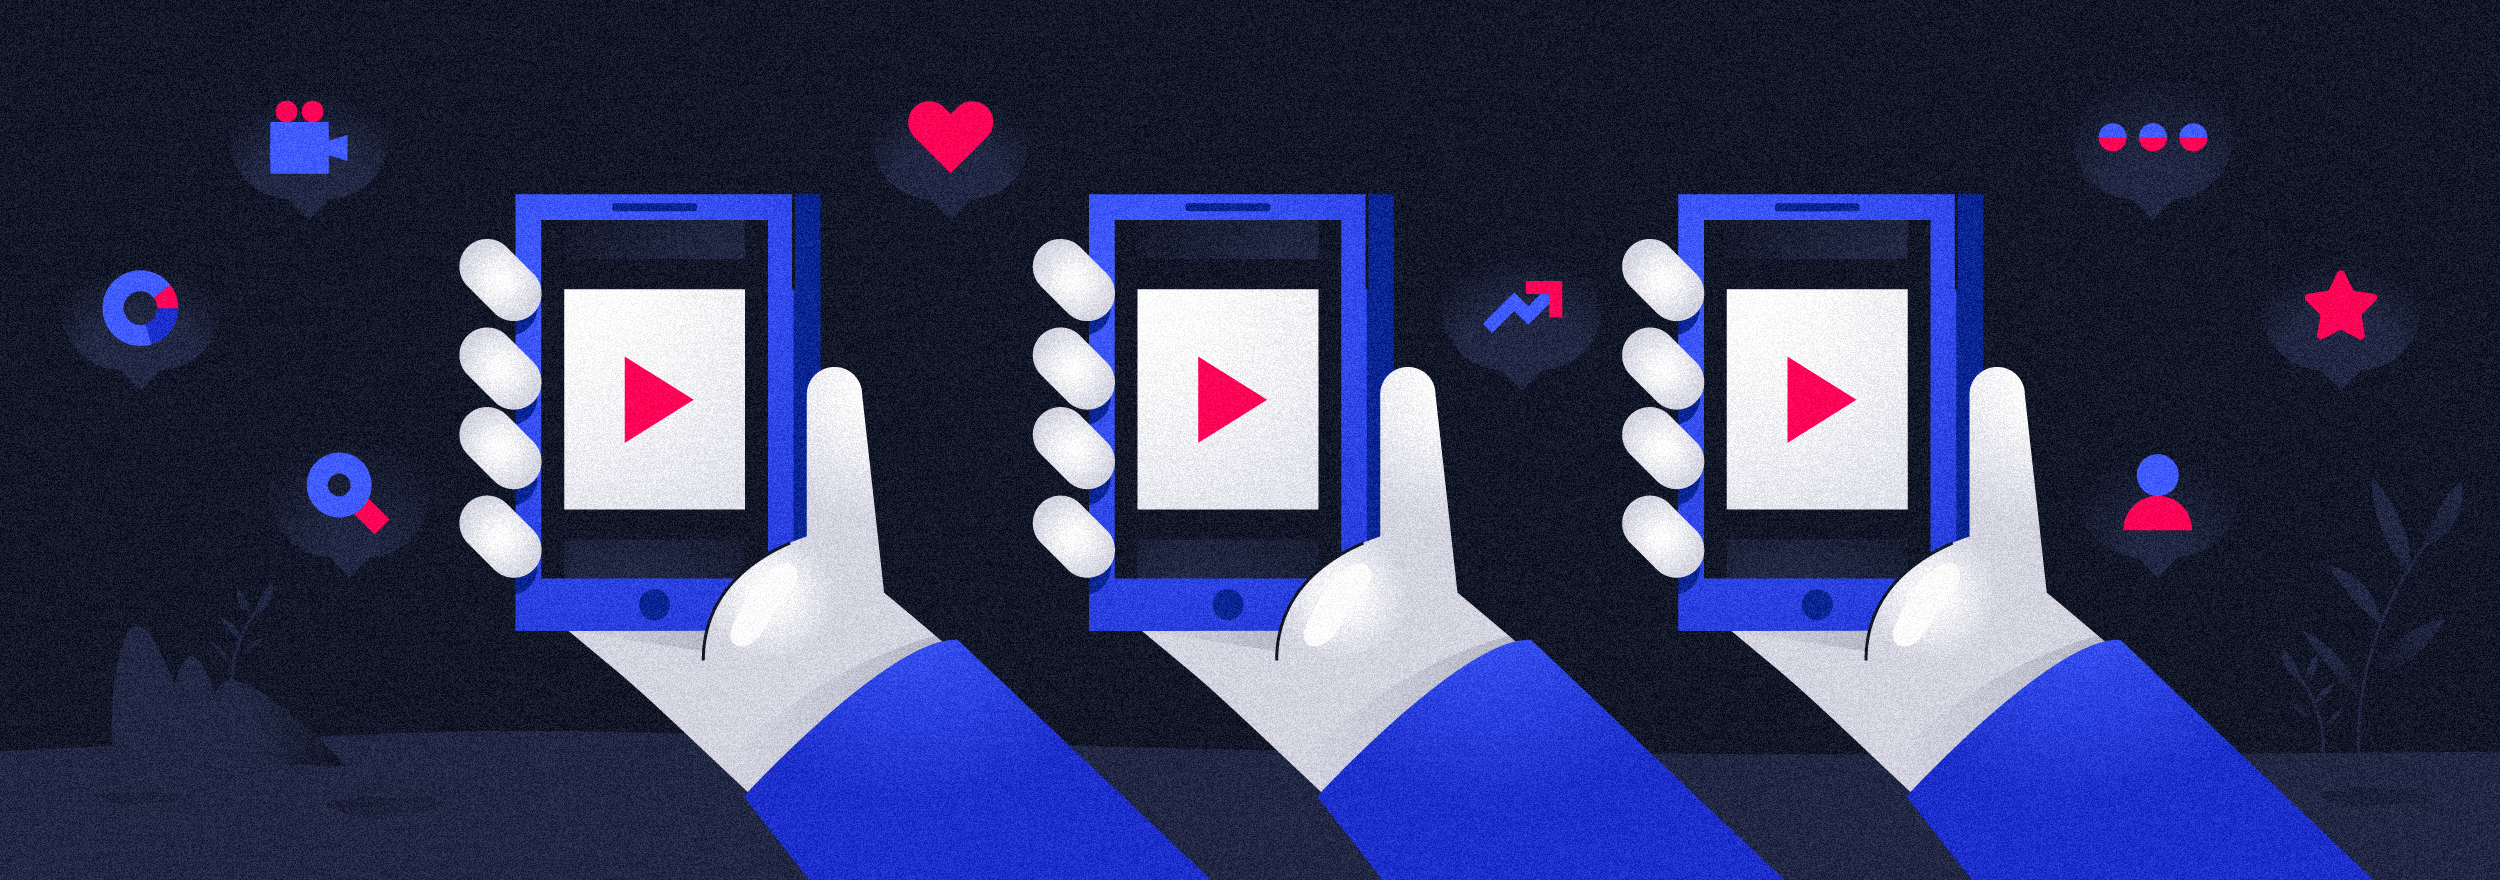 What Is Video Marketing? Benefits, Challenges, and Best Practices